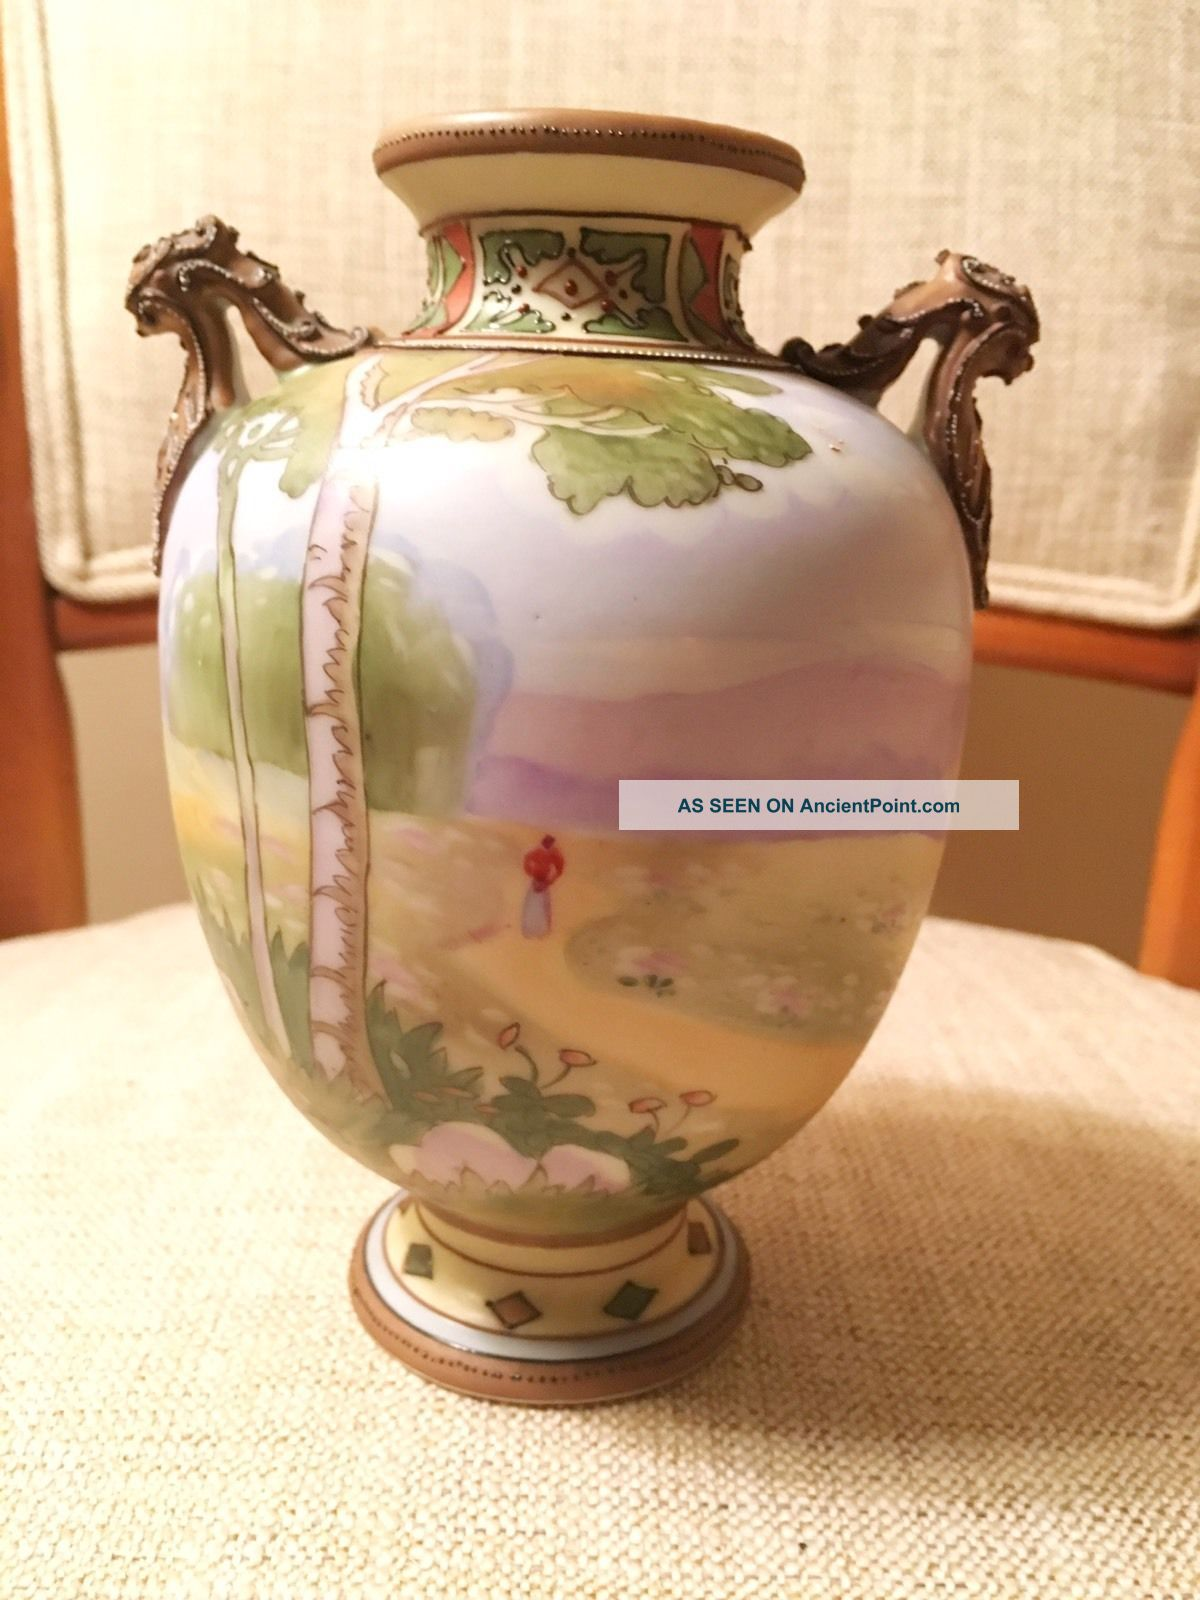 Antique Japanese Nippon Country Landscape Hand Painted Vase Arts & Crafts Period Arts & Crafts Movement photo